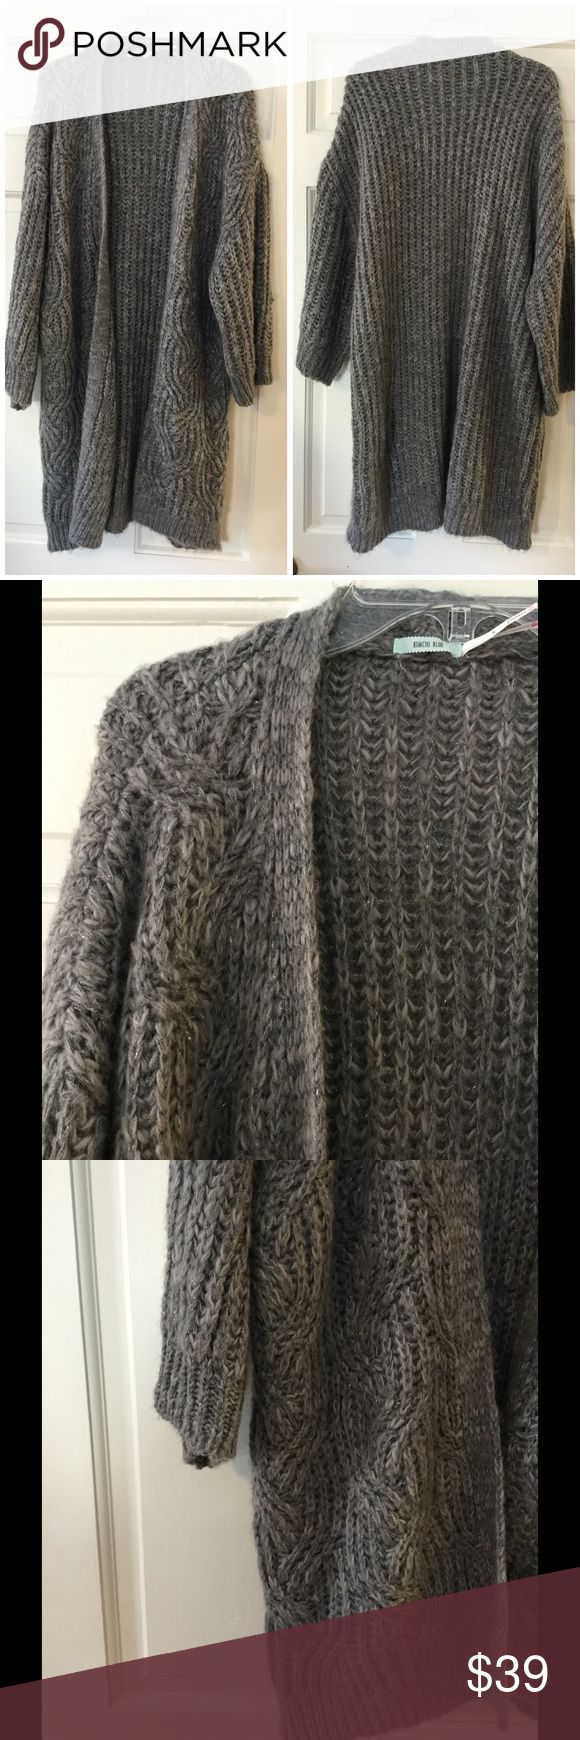 """⚡️SALE⚡️ Kimchi Blue Metallic Blanket Cardigan This oversized, super soft Kimchi Blue Dolman Sleeve cardigan has silver threads running throughout. Acrylic/polyester. Machine wash.  Underarm across 24"""". Length 35"""". Excellent condition. EUC. Urban Outfitters Sweaters Cardigans"""